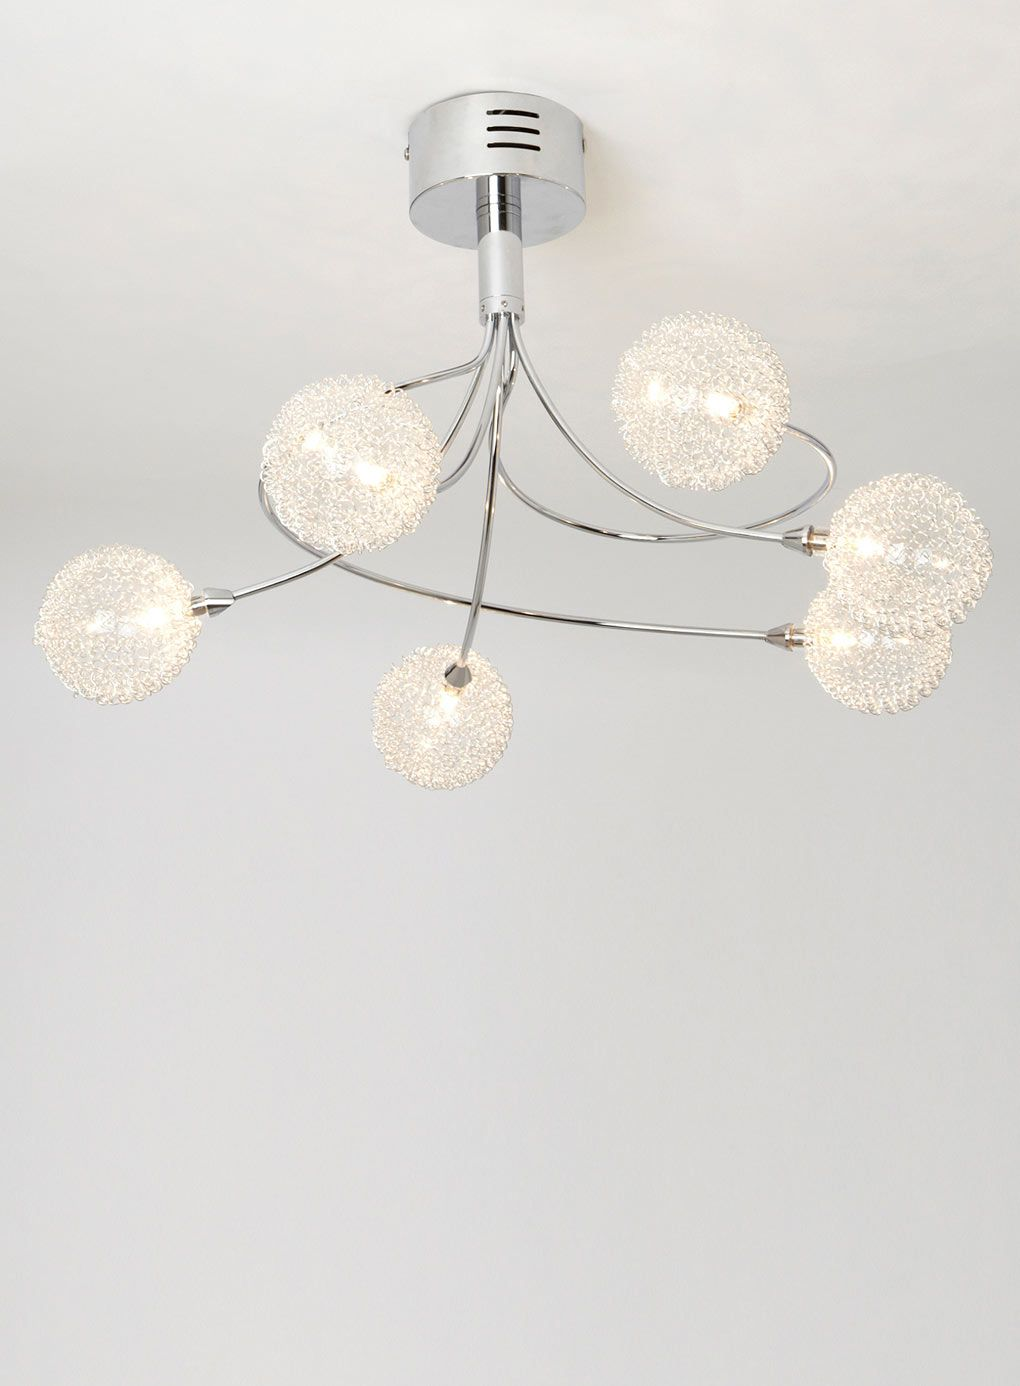 Allium flush fitting ceiling light bhs dining room pinterest allium flush fitting ceiling light bhs mozeypictures Image collections